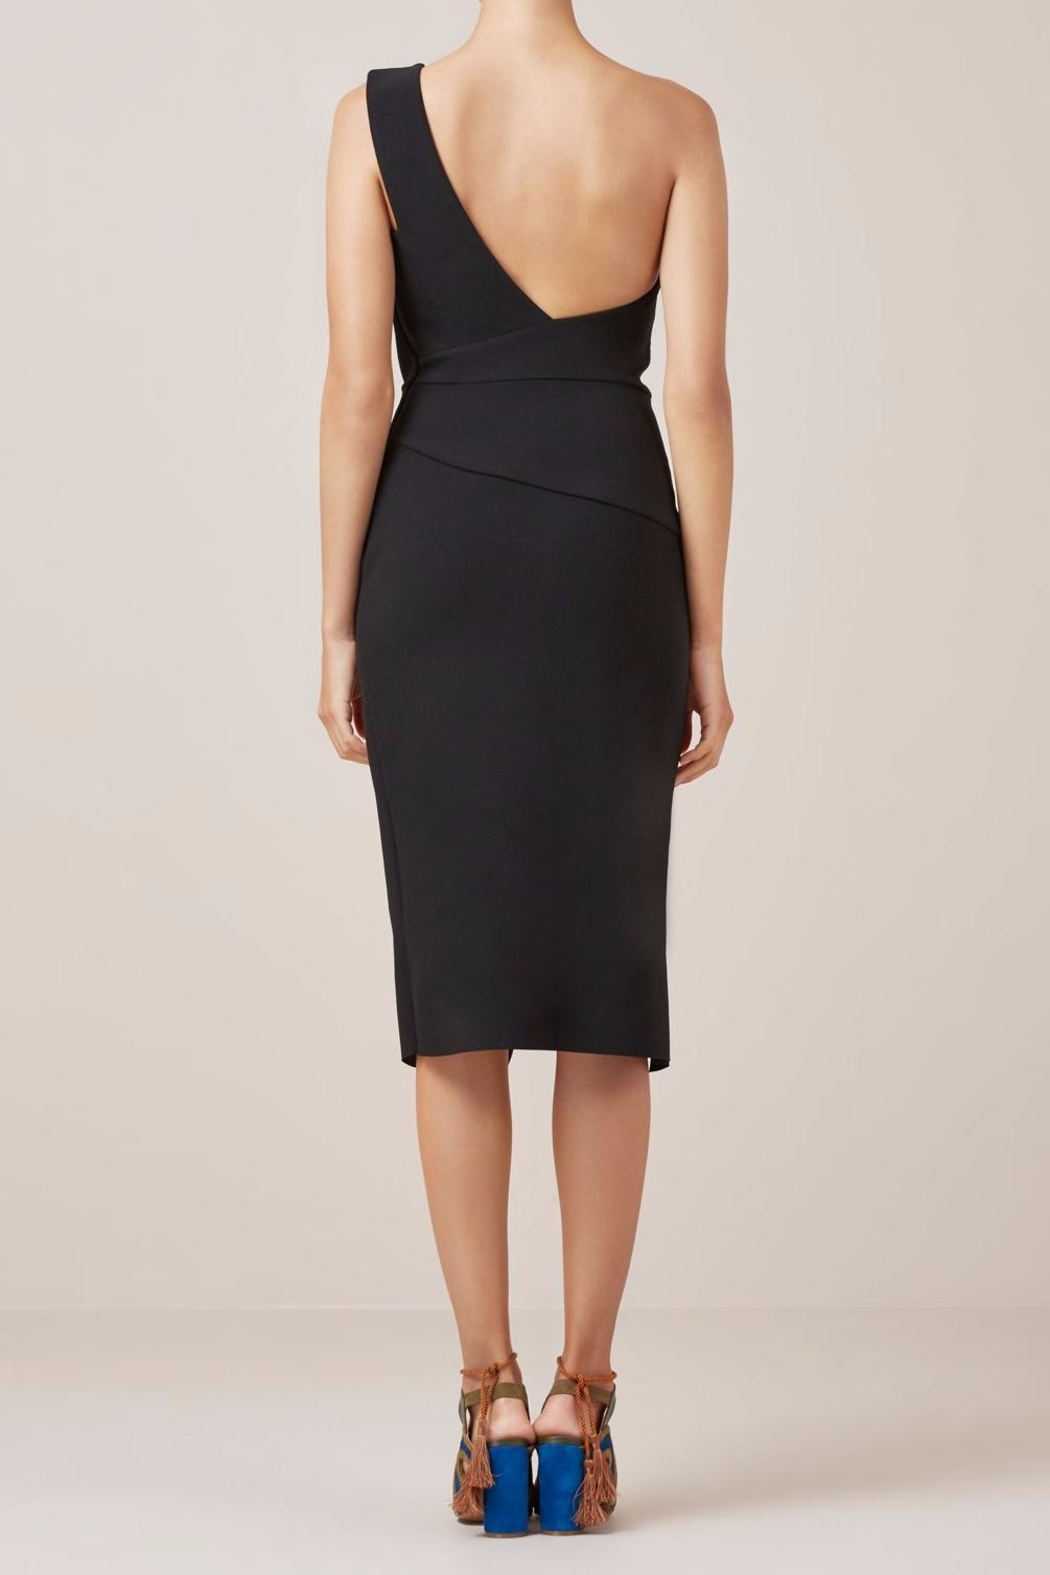 Finders Keepers Oblivion Midi Dress - Front Full Image